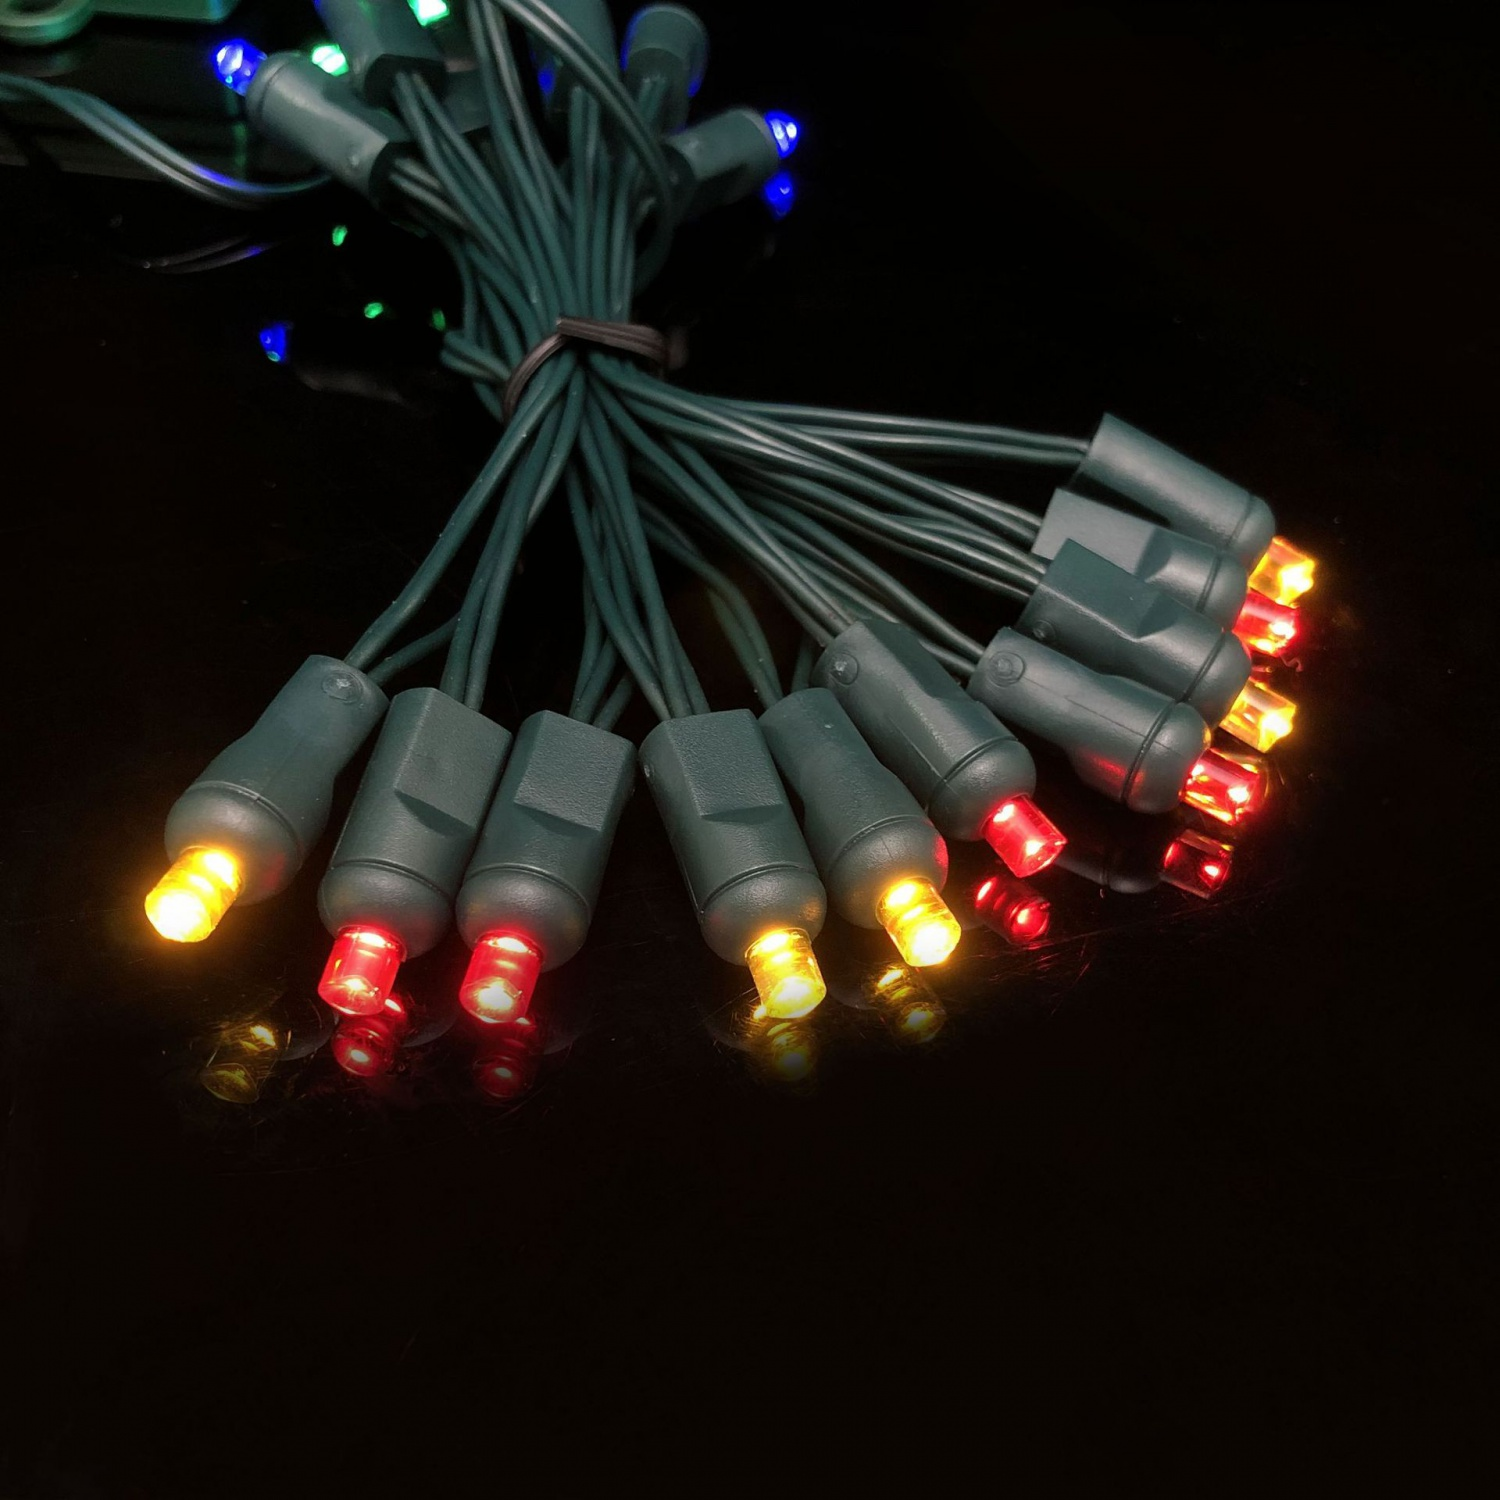 3V /120V 5LP LED String ights